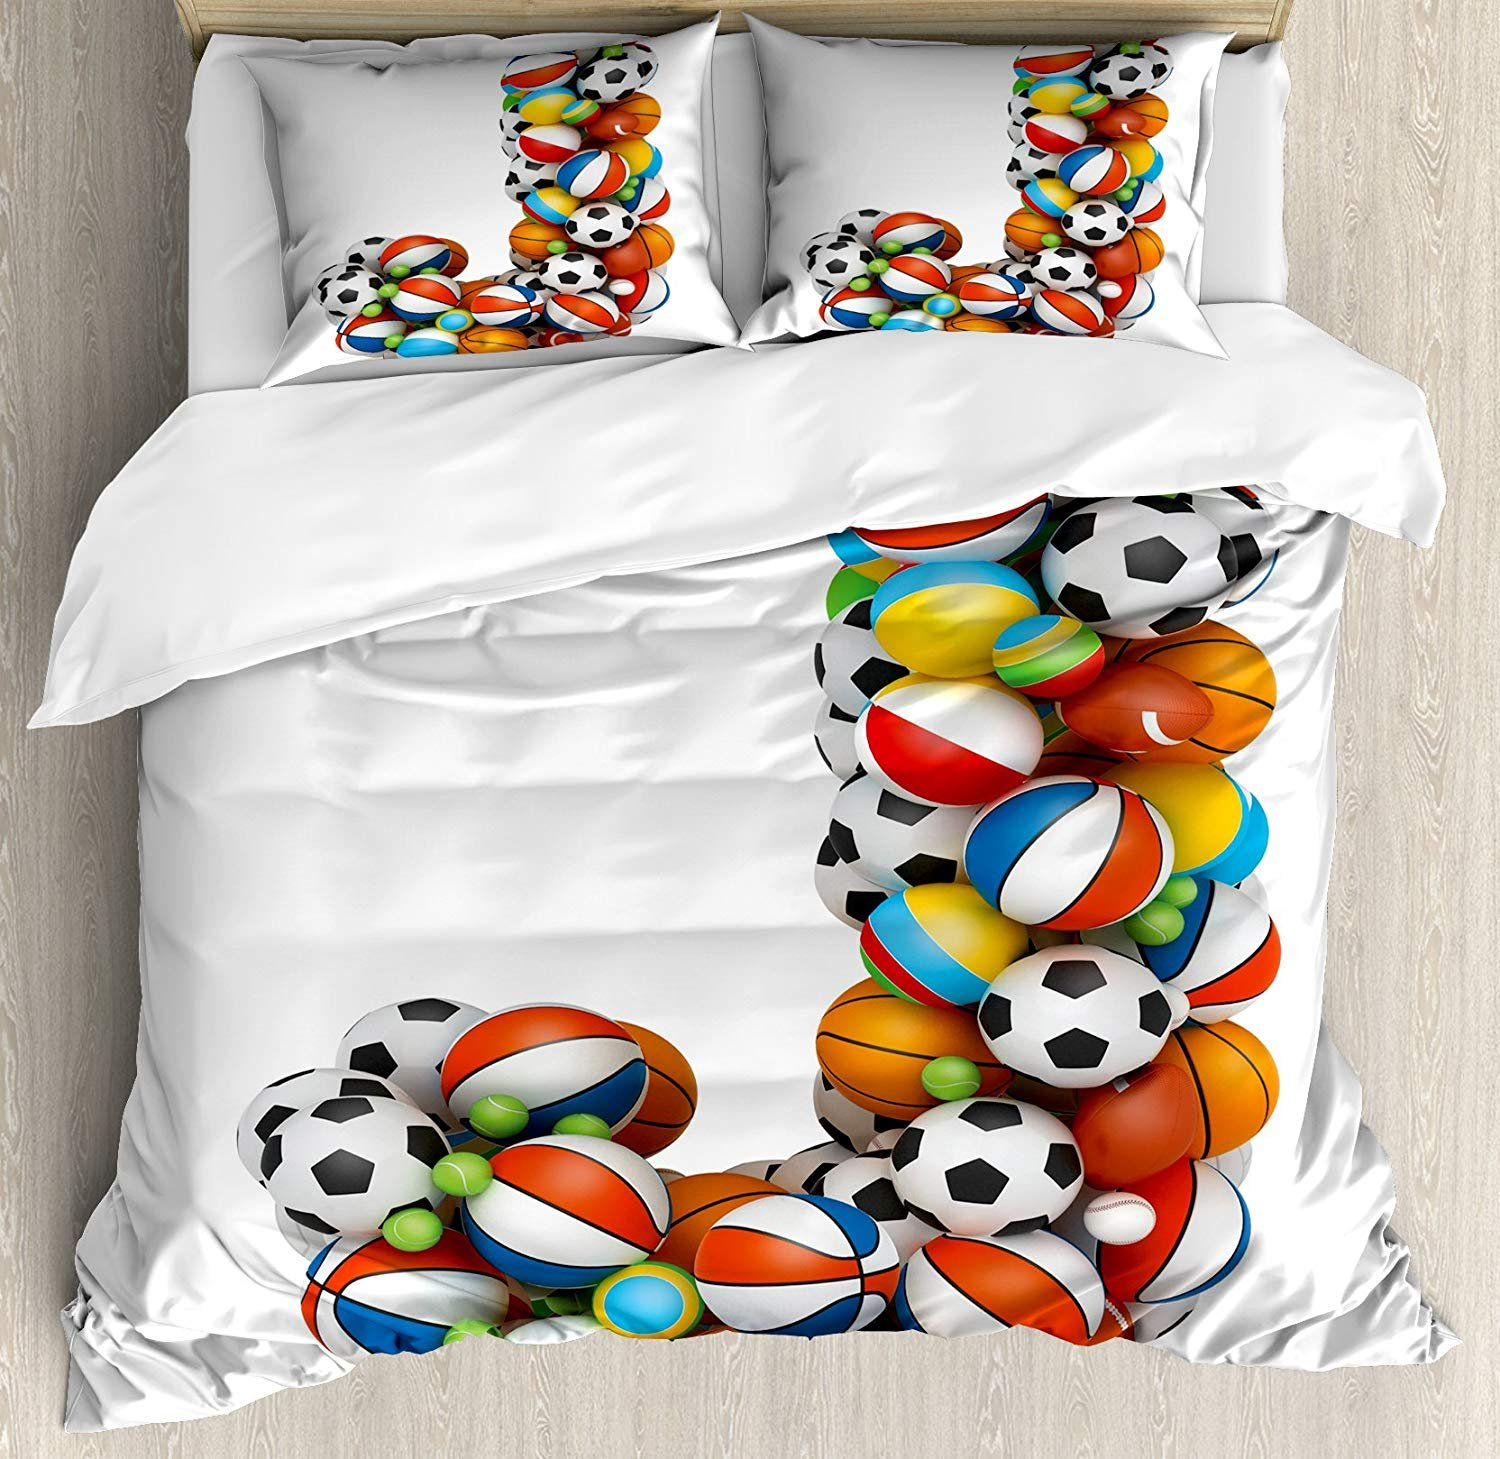 Duvet Cover Set Letter J Letter J Capitalized Sporting Goods Basketball Football Pigskin Fun Games Design Ultra Soft Durable Twill Plush 4 Pcs Bedding Sets for Childrens/Kids/Teens/Adults Twin Size